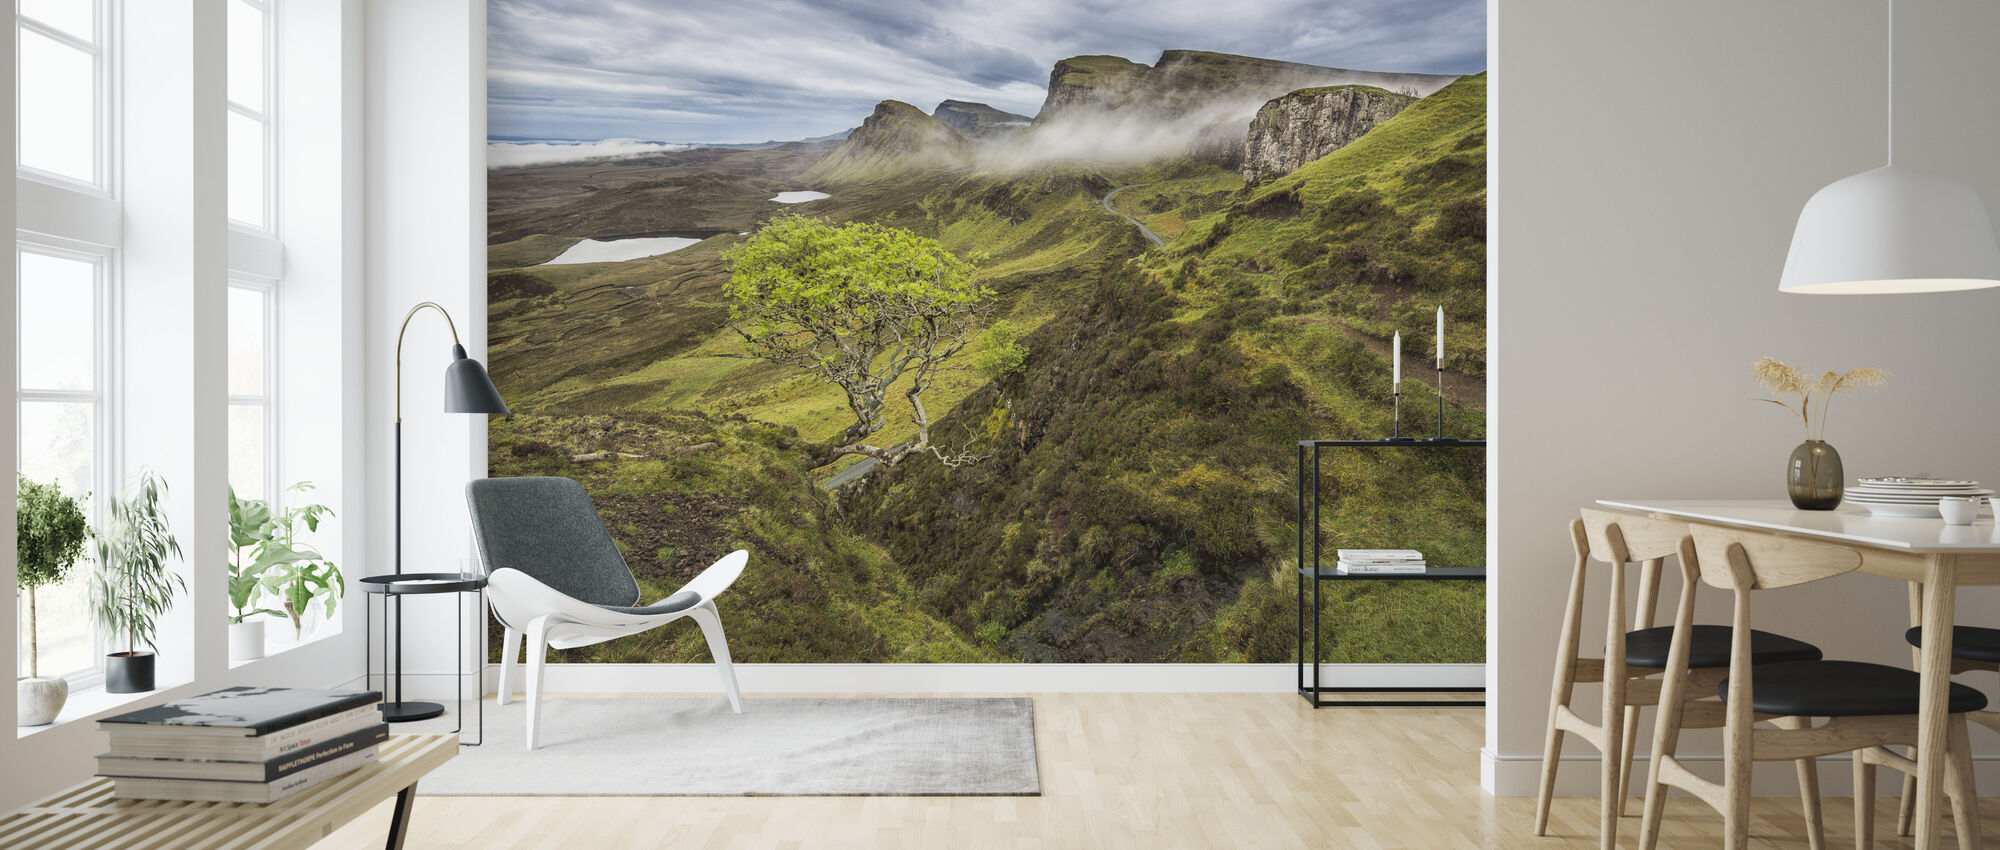 Quirang, Isle of Skye - Scotland - Wallpaper - Living Room